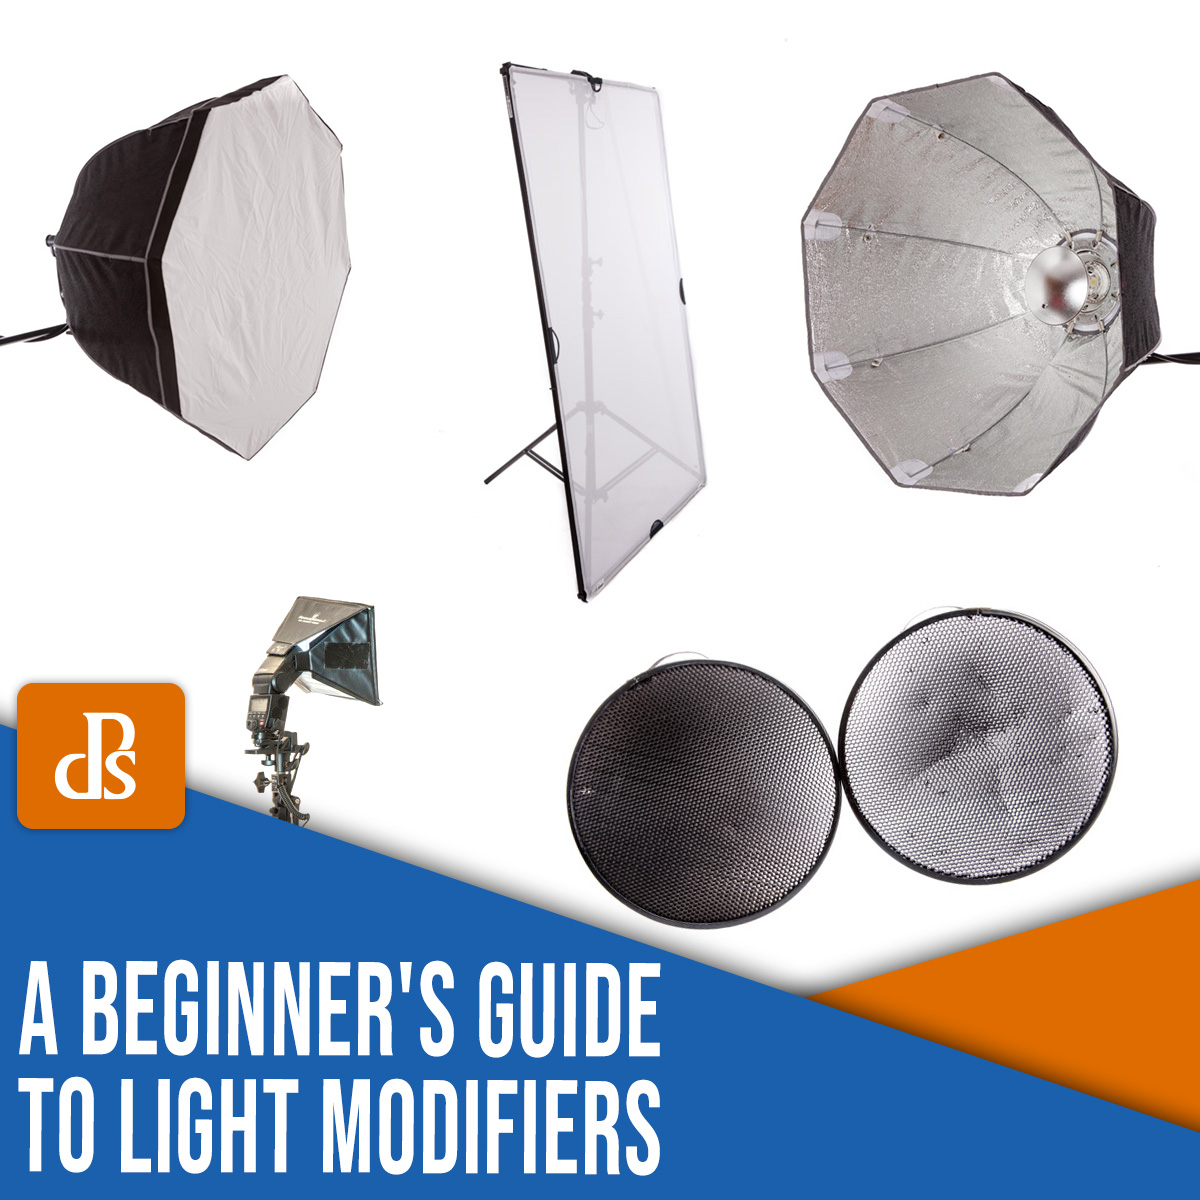 a beginner's guide to light modifiers